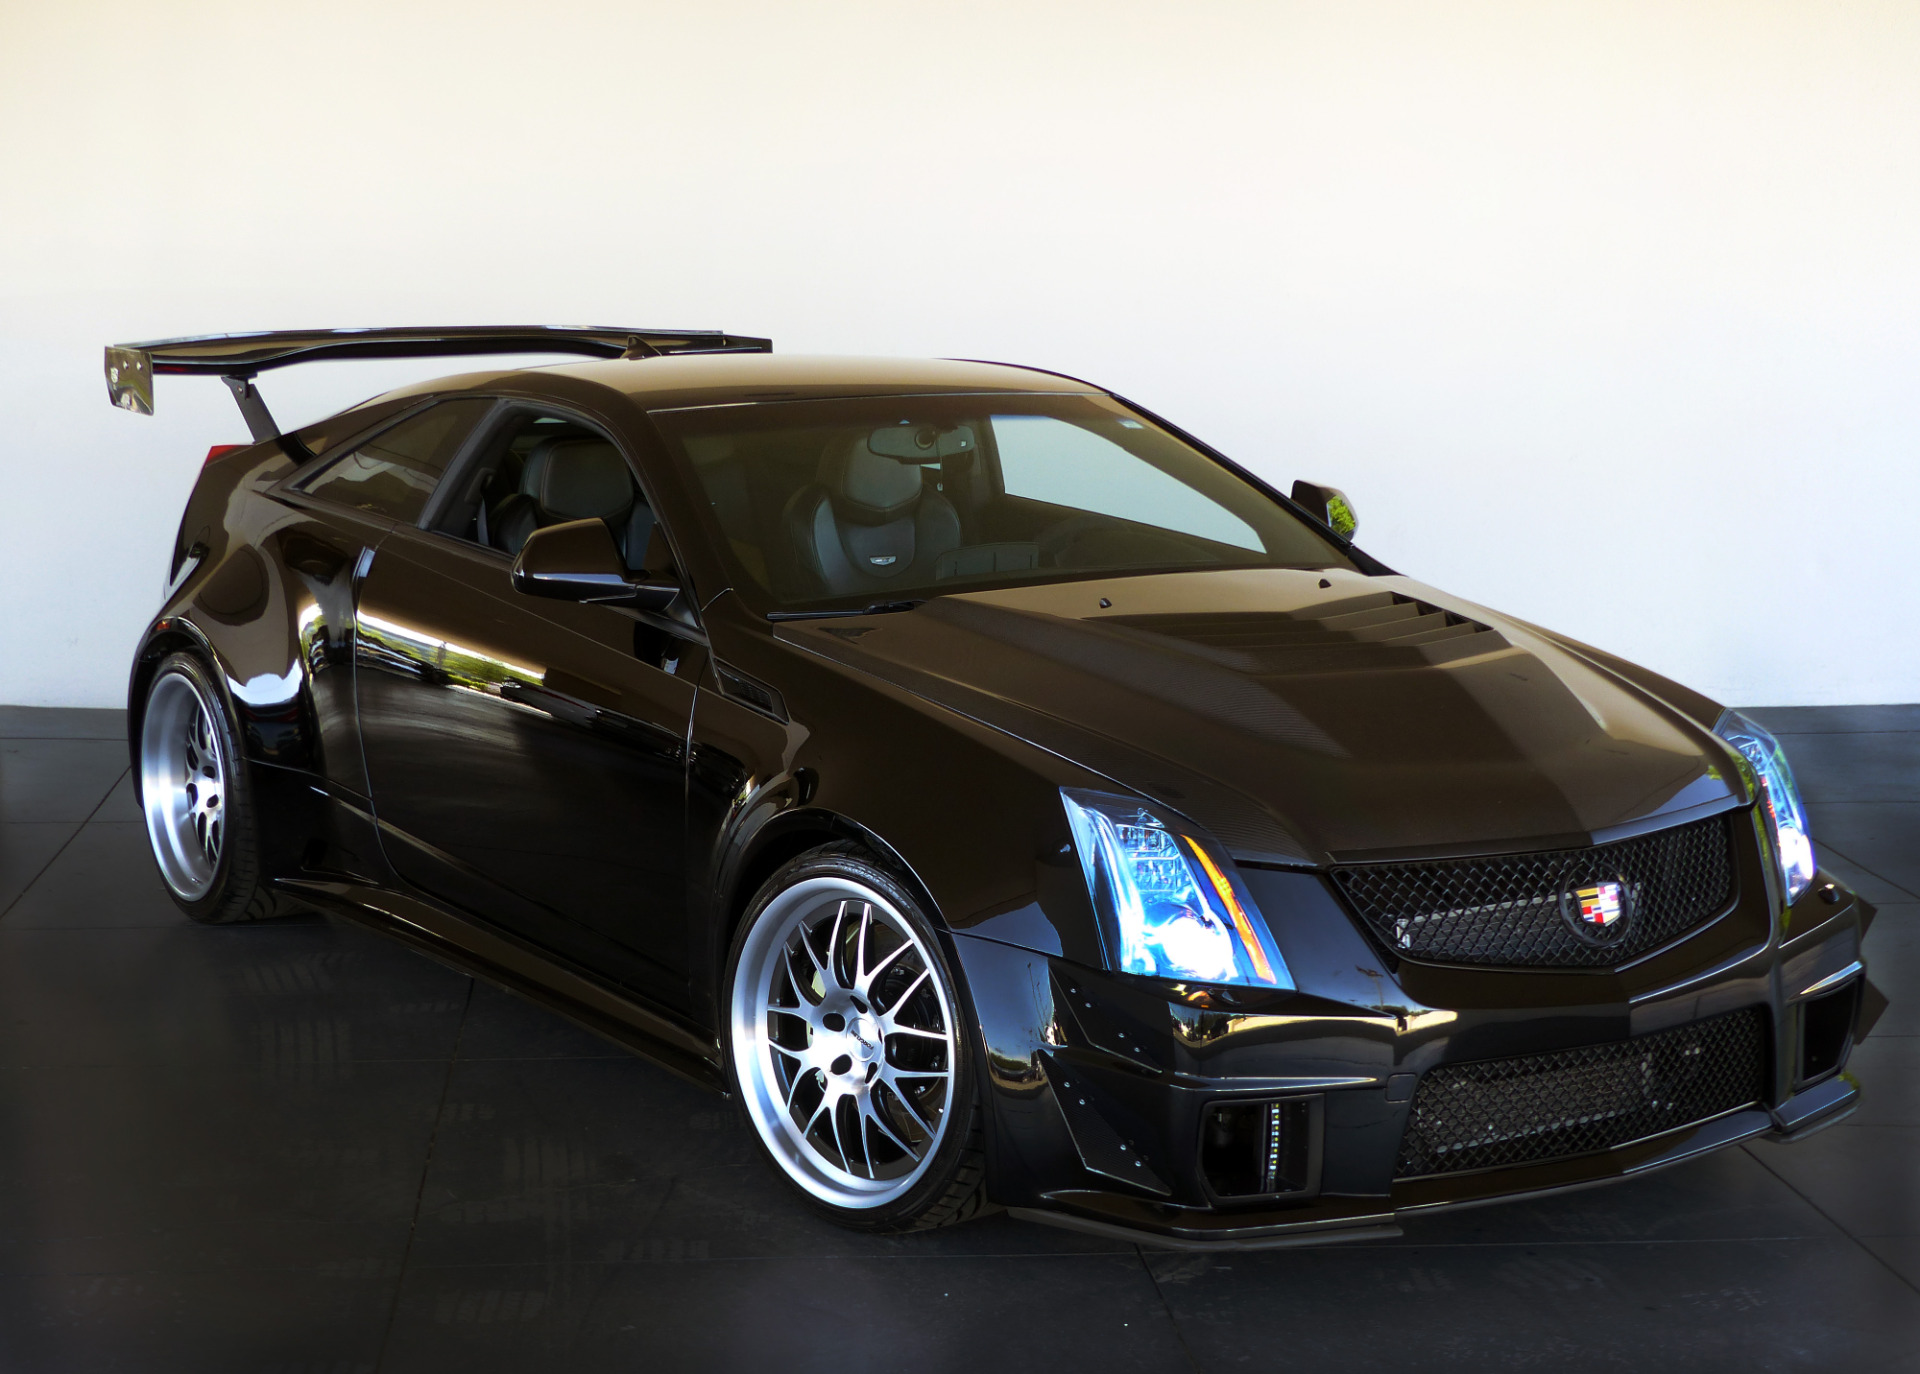 used 2011 cadillac cts v marietta ga. Black Bedroom Furniture Sets. Home Design Ideas